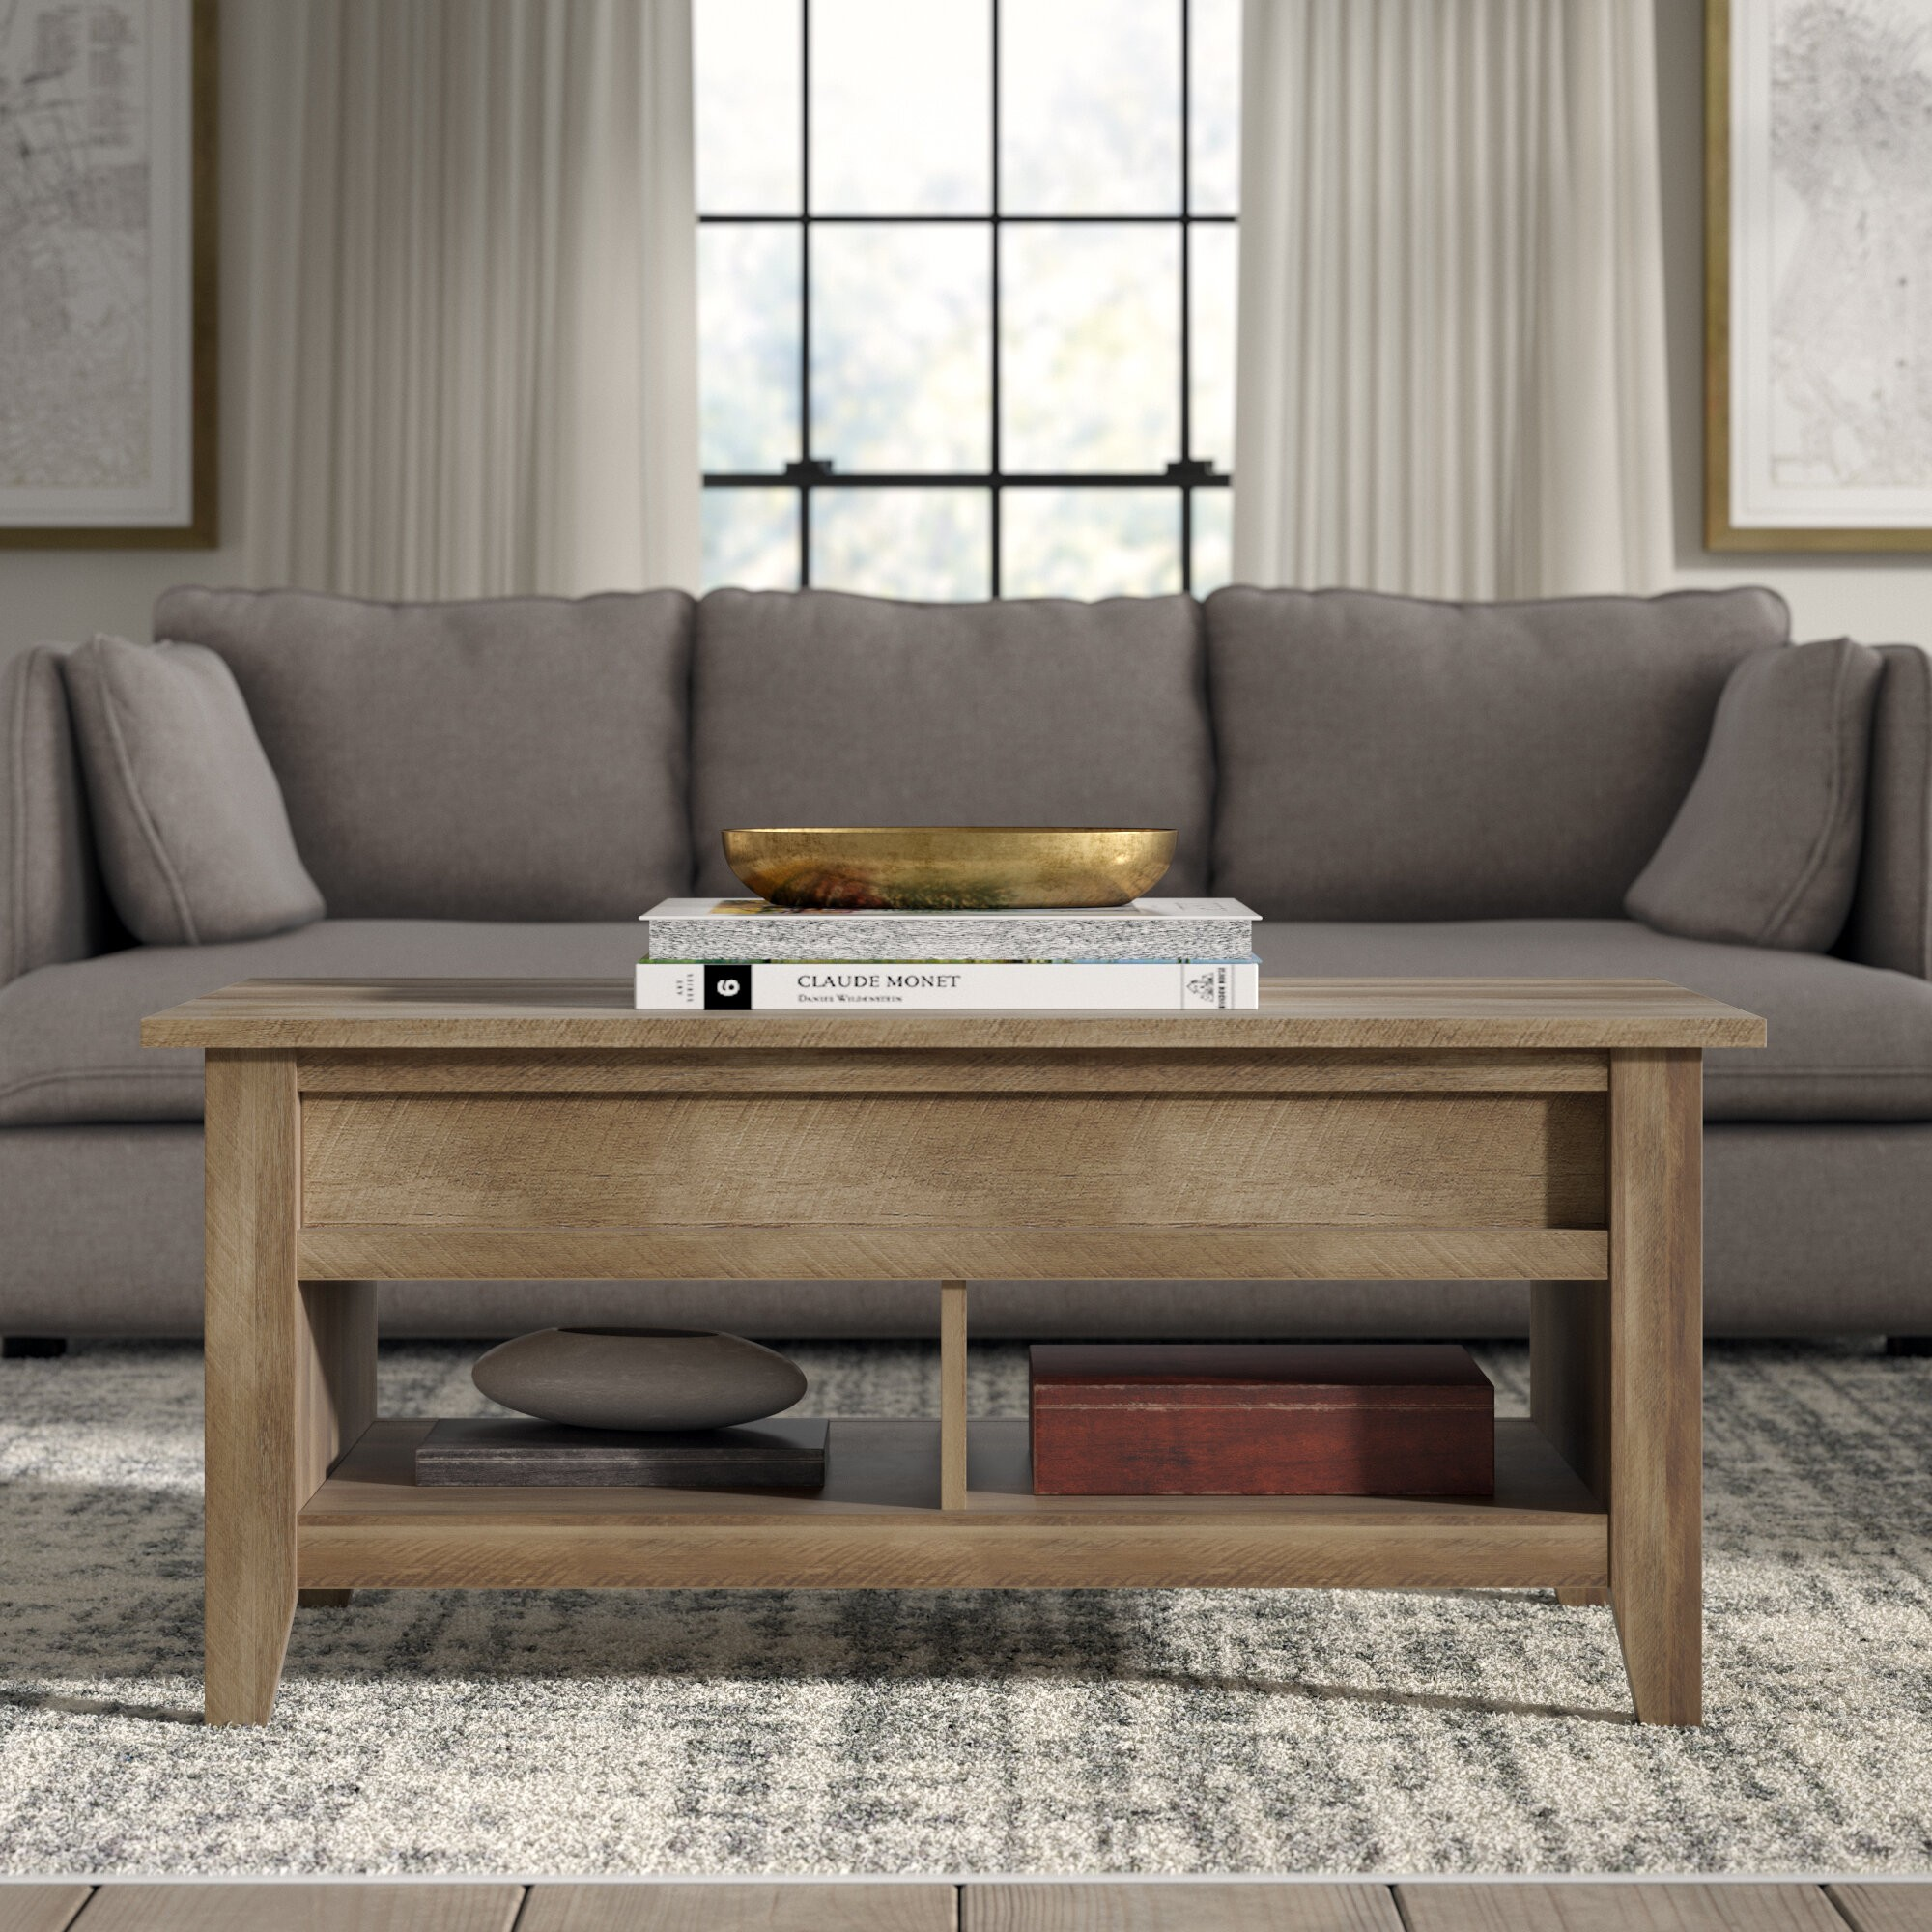 Riddleville Lift Top Extendable Coffee Table with Storage